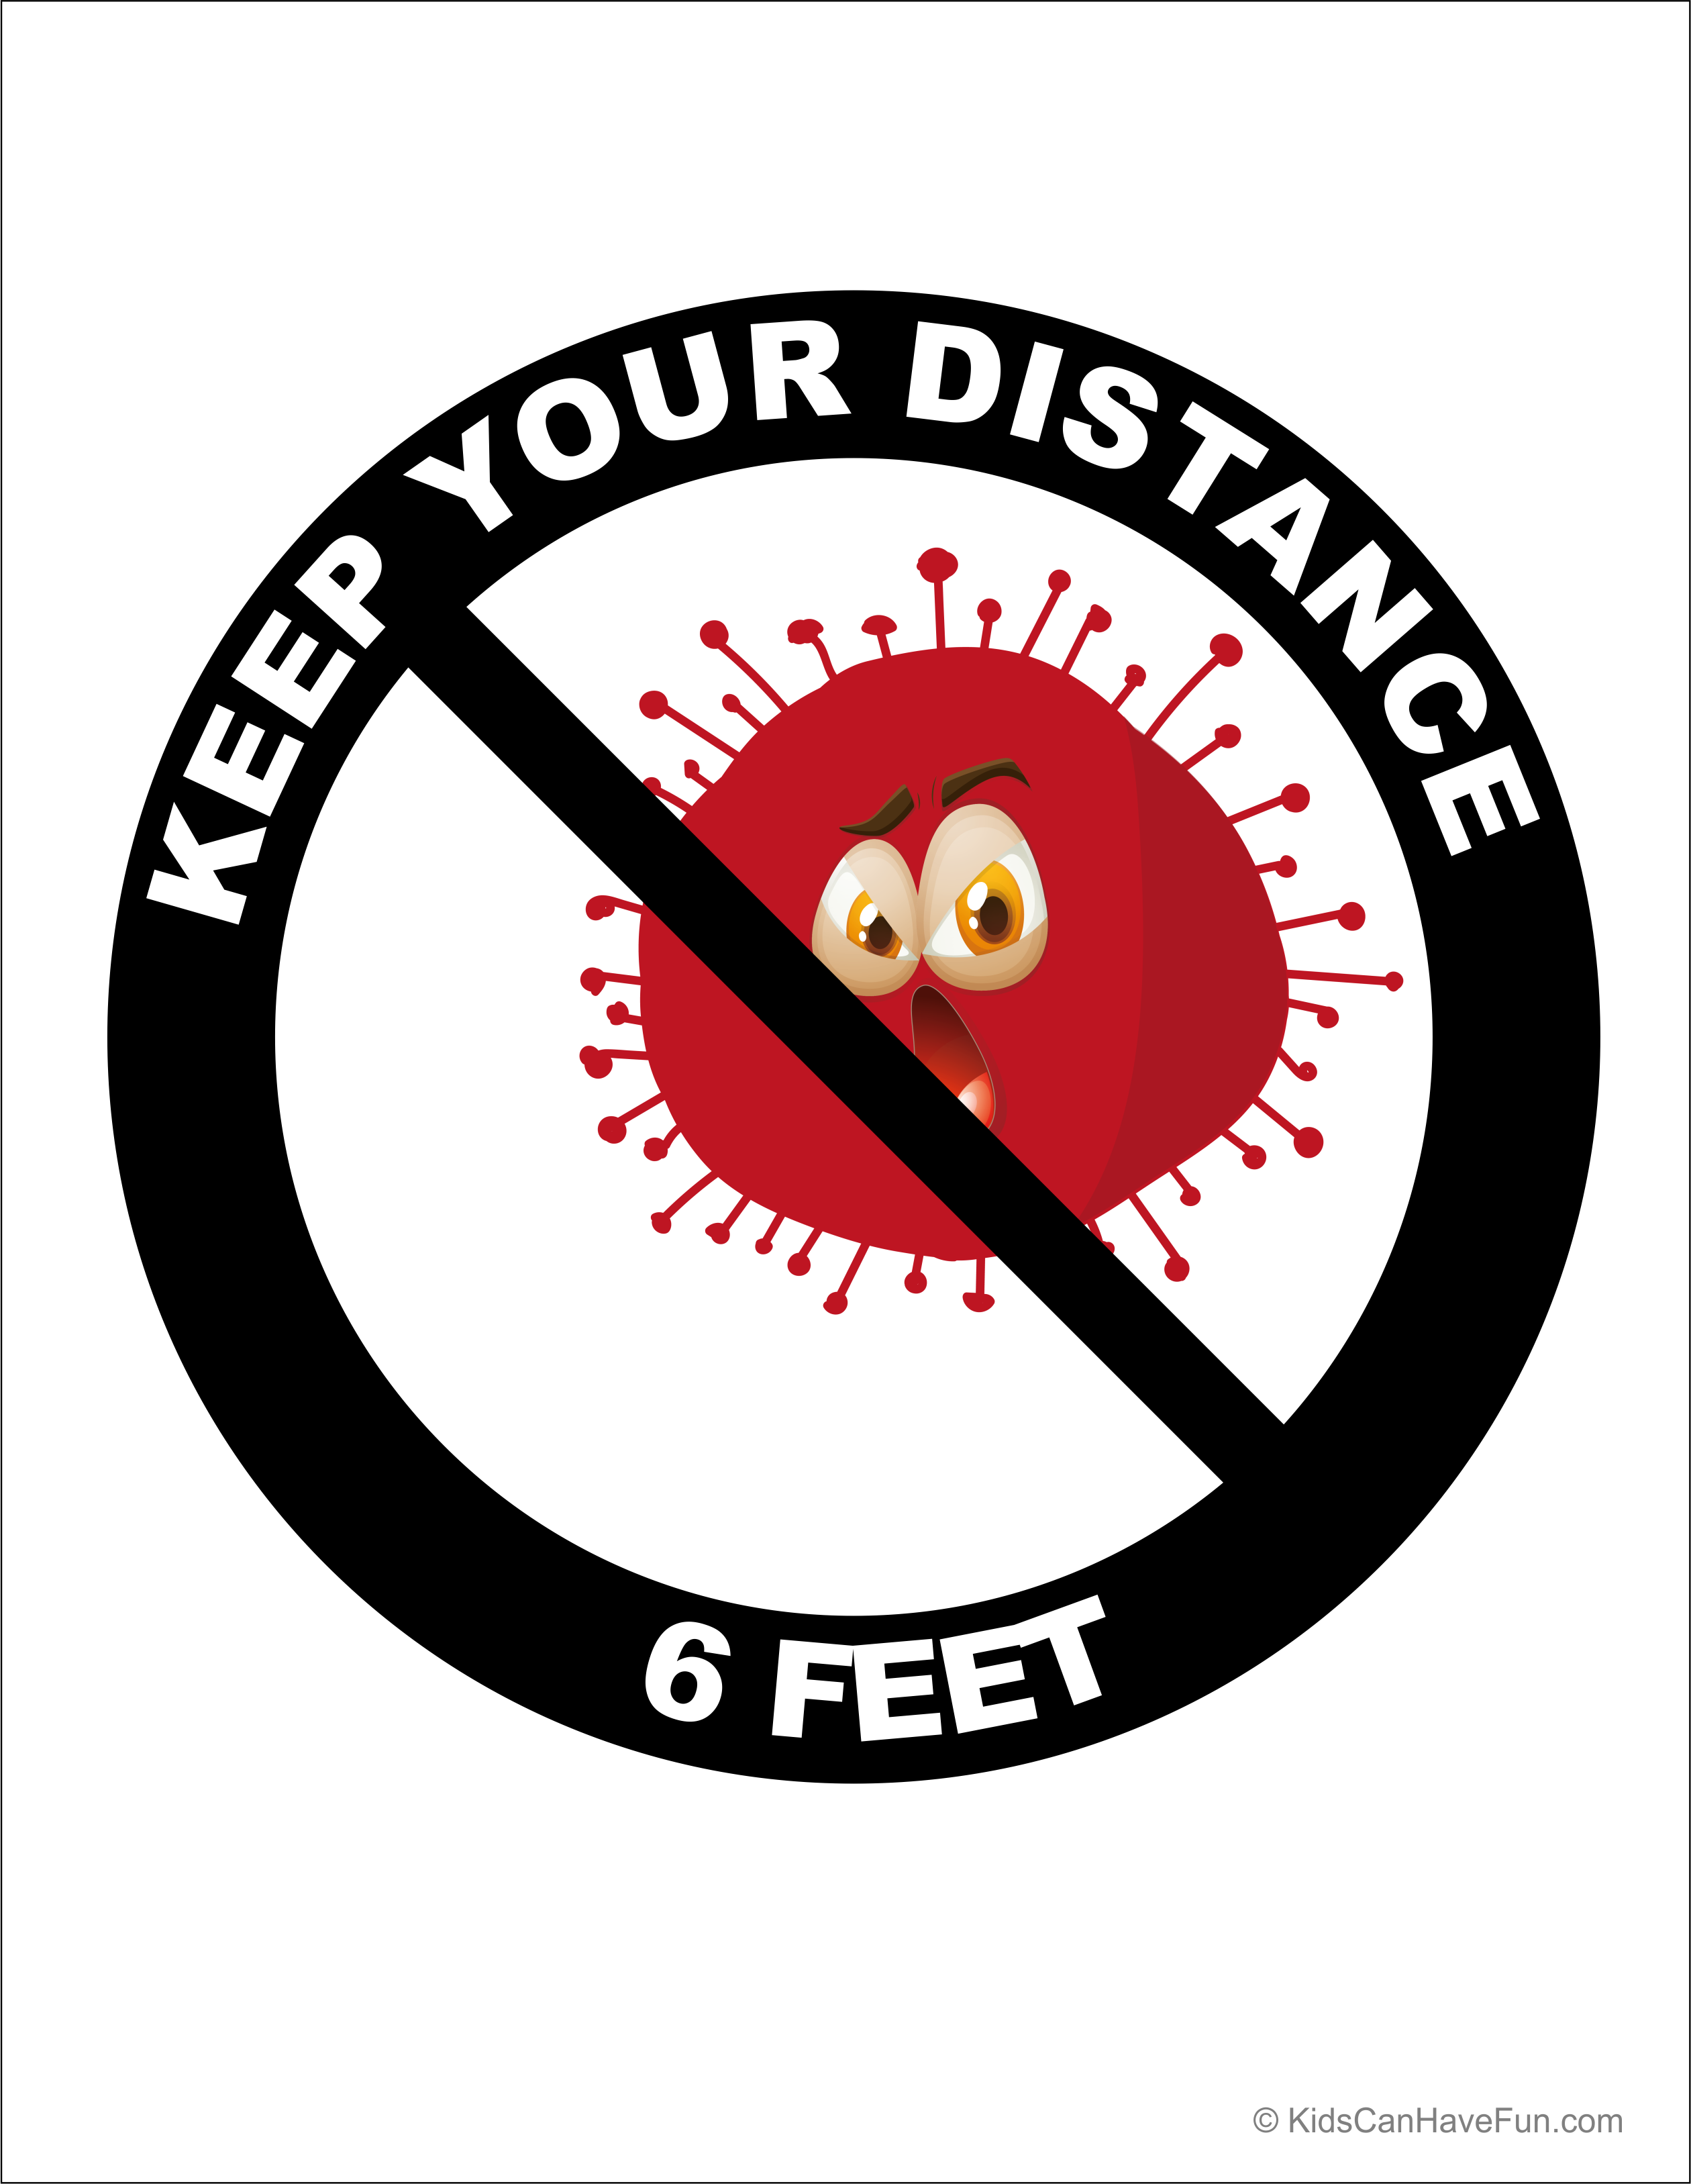 Keep Your Distance 6 Feet Poster In